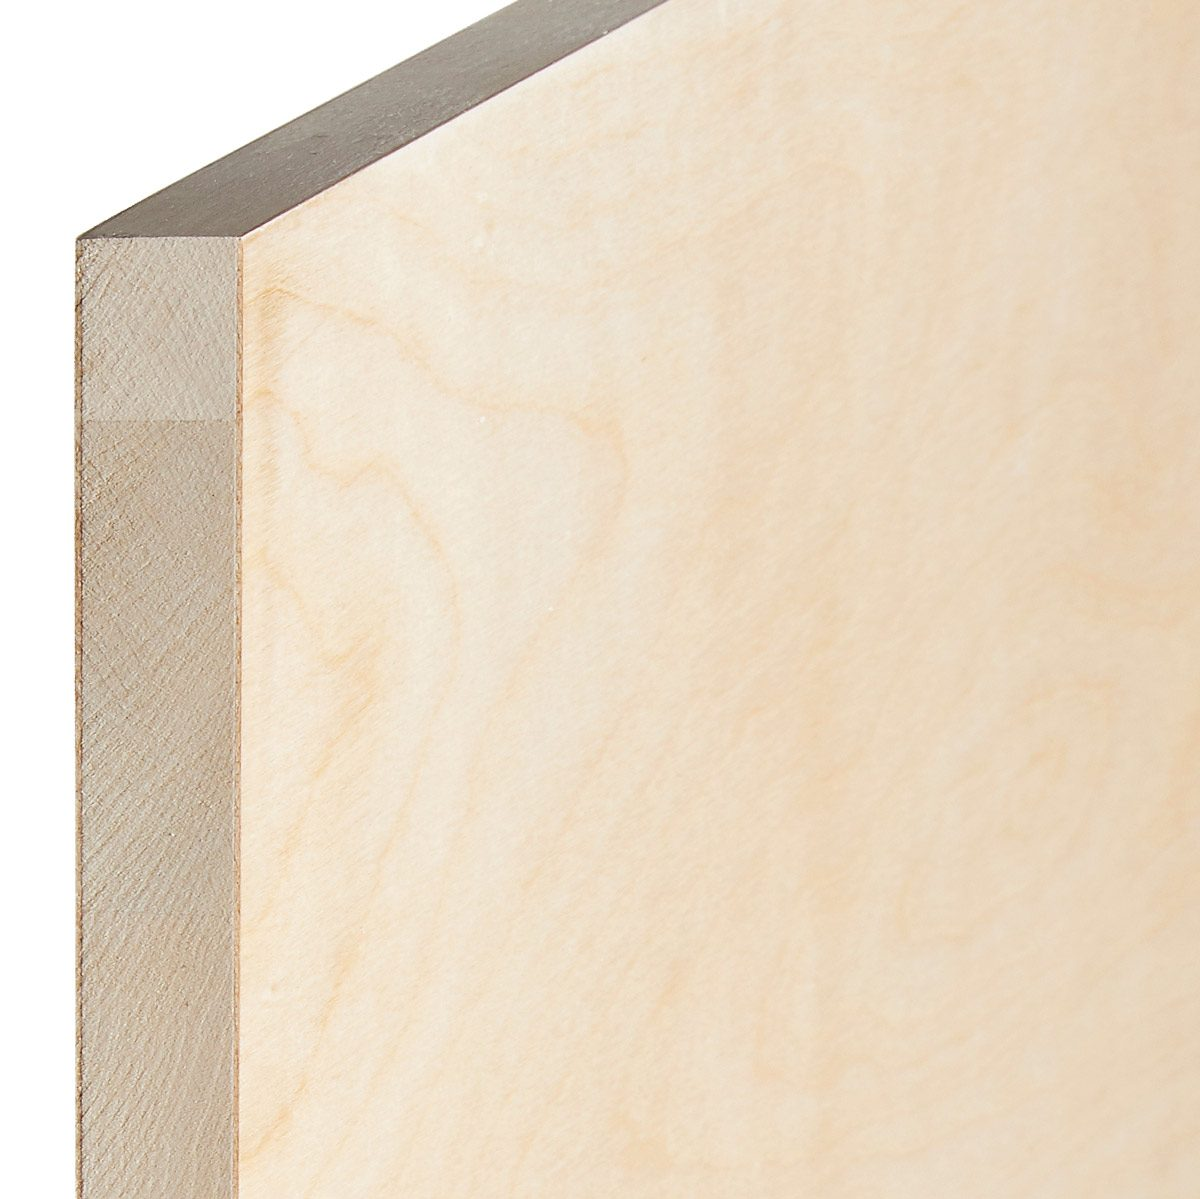 lumber core plywood